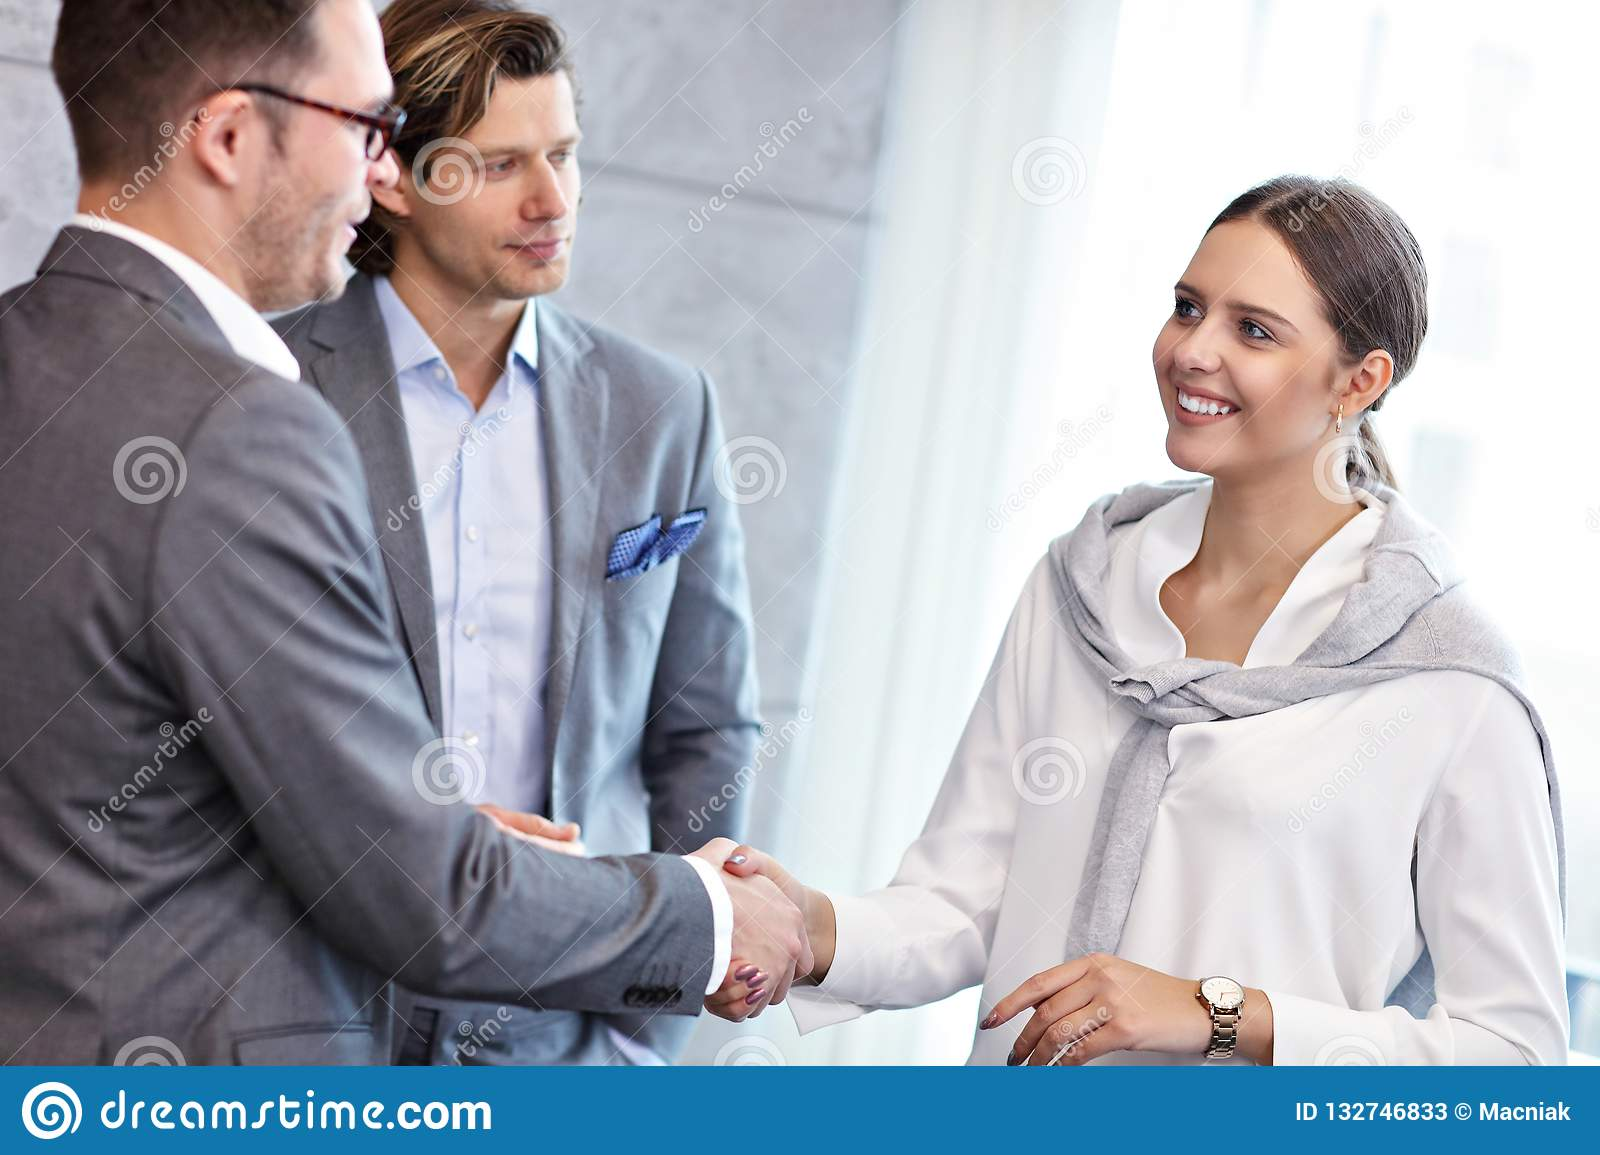 Group of business people introducing one another